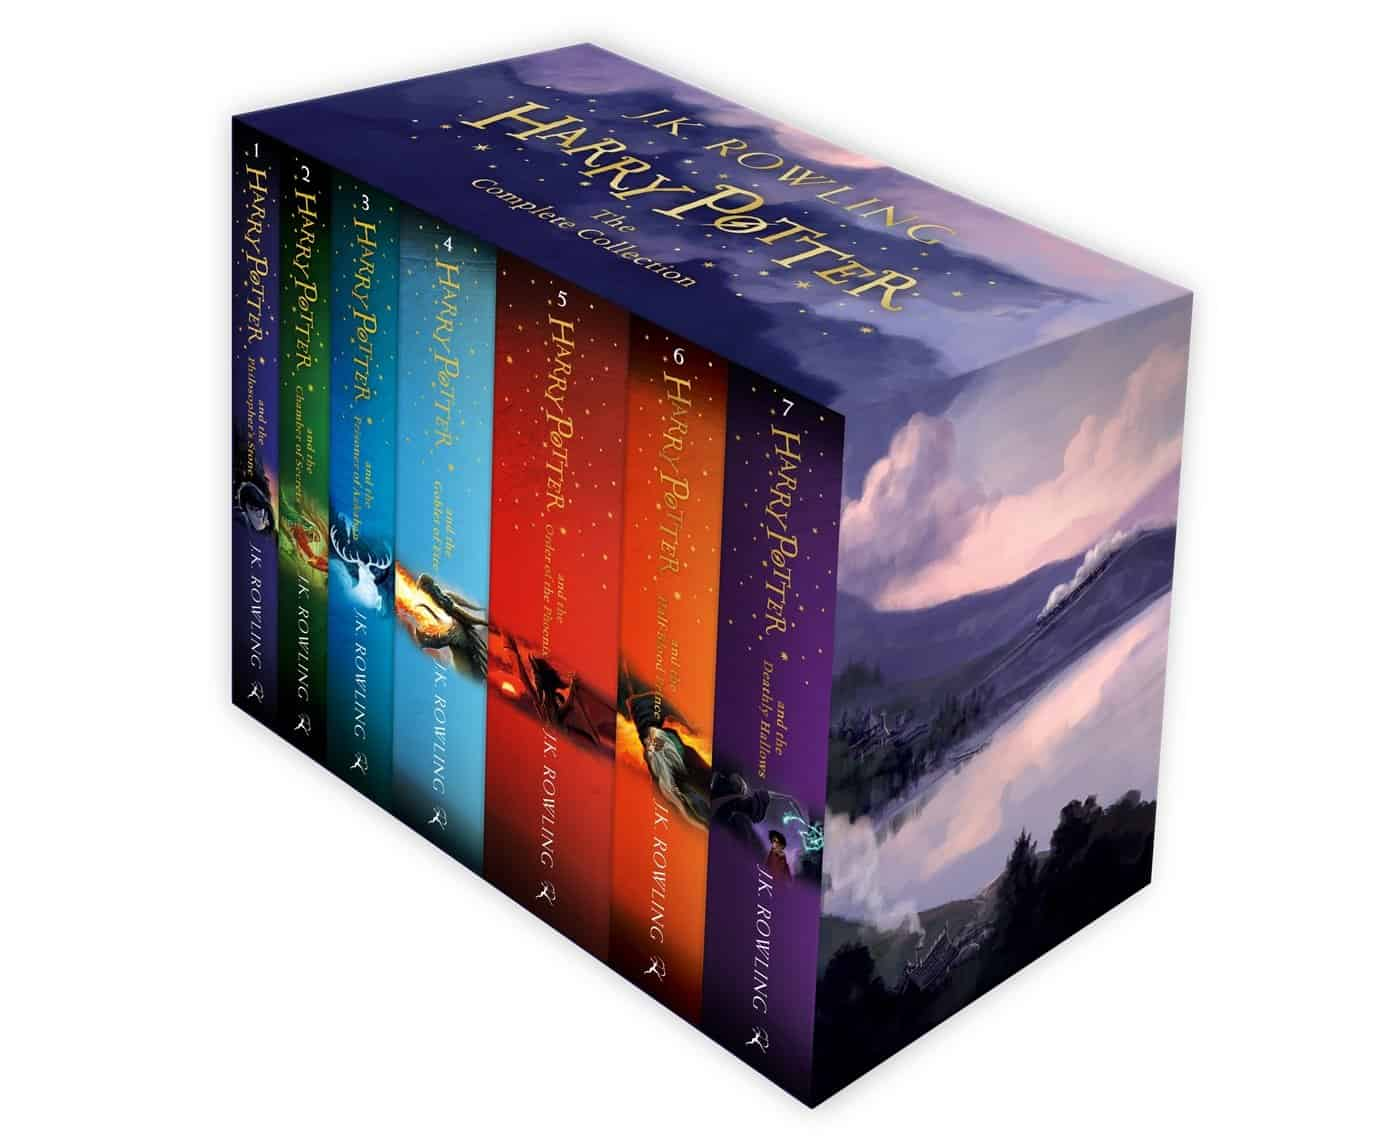 HP book collection